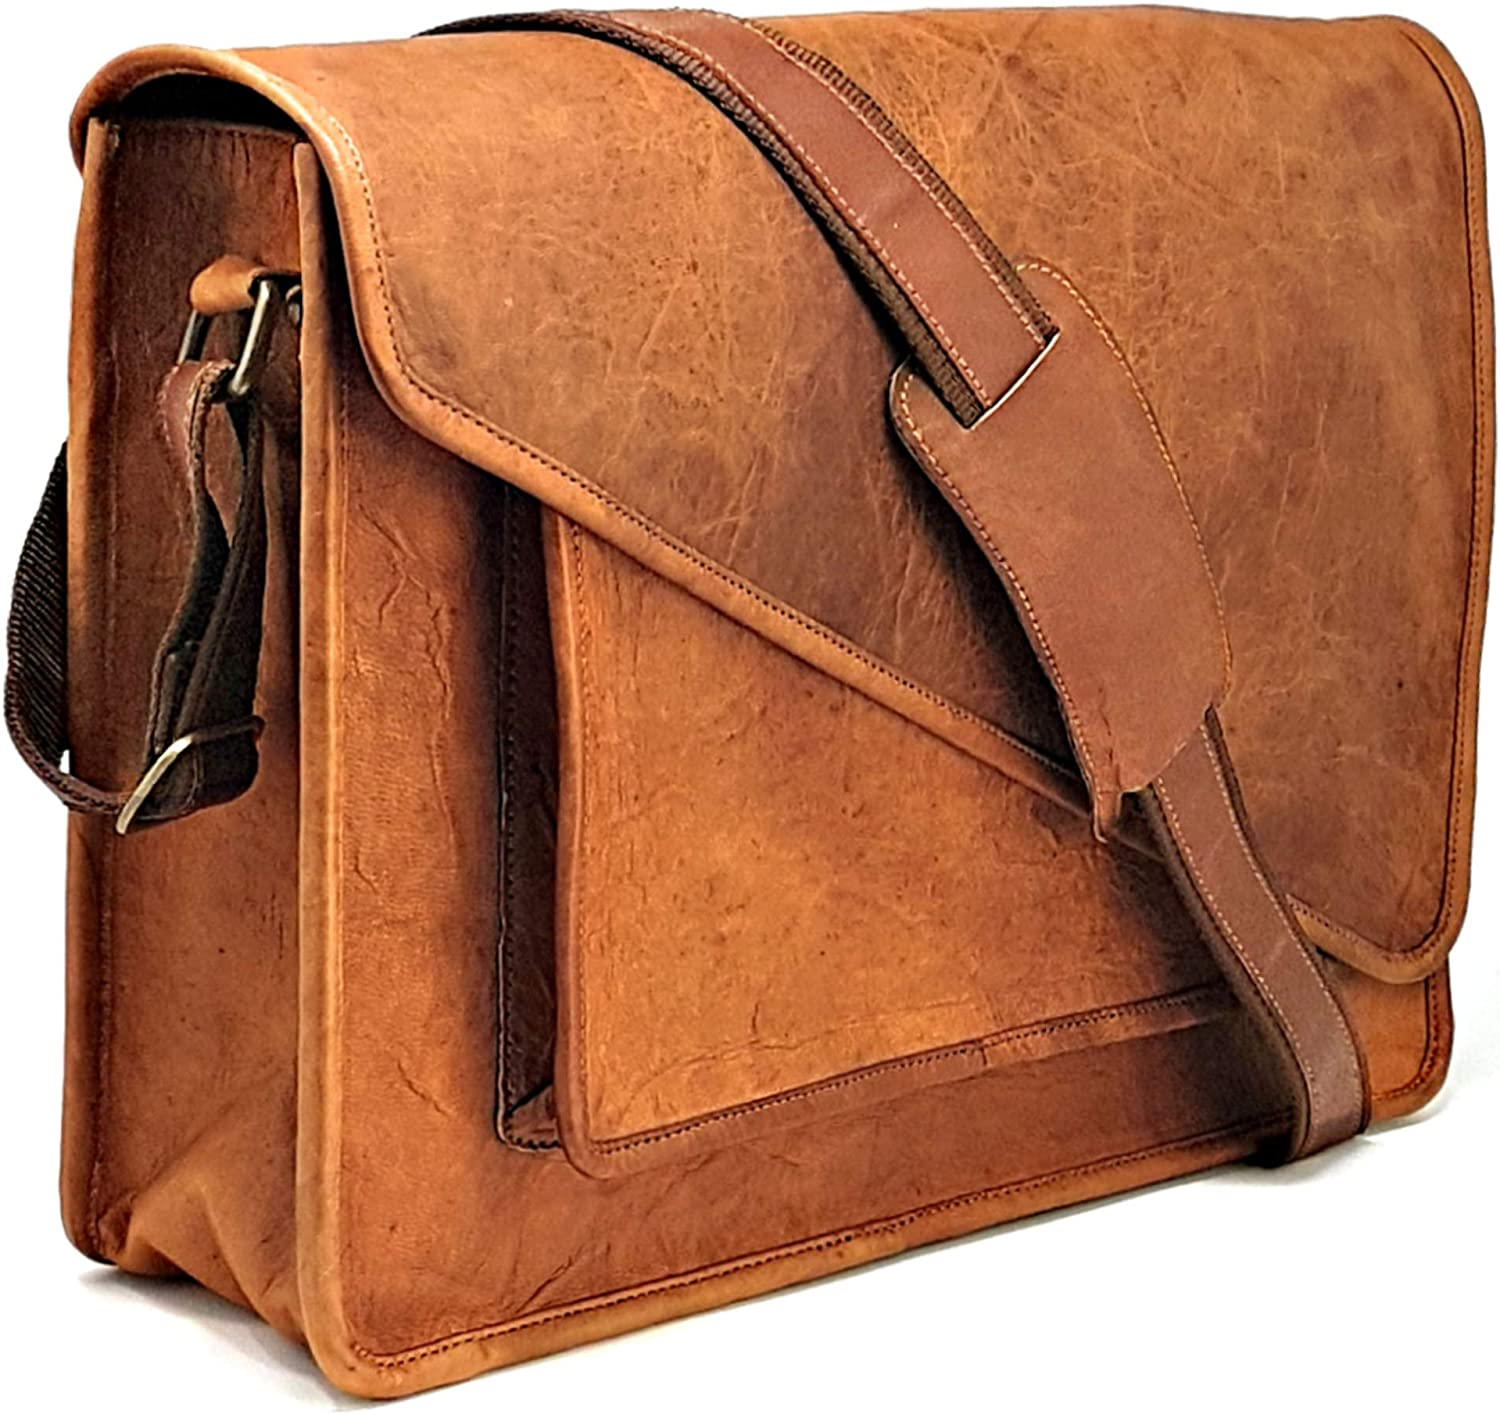 Laptop Messenger and Shoulder Bag – Leather Crossbody Office Bag – Unisex